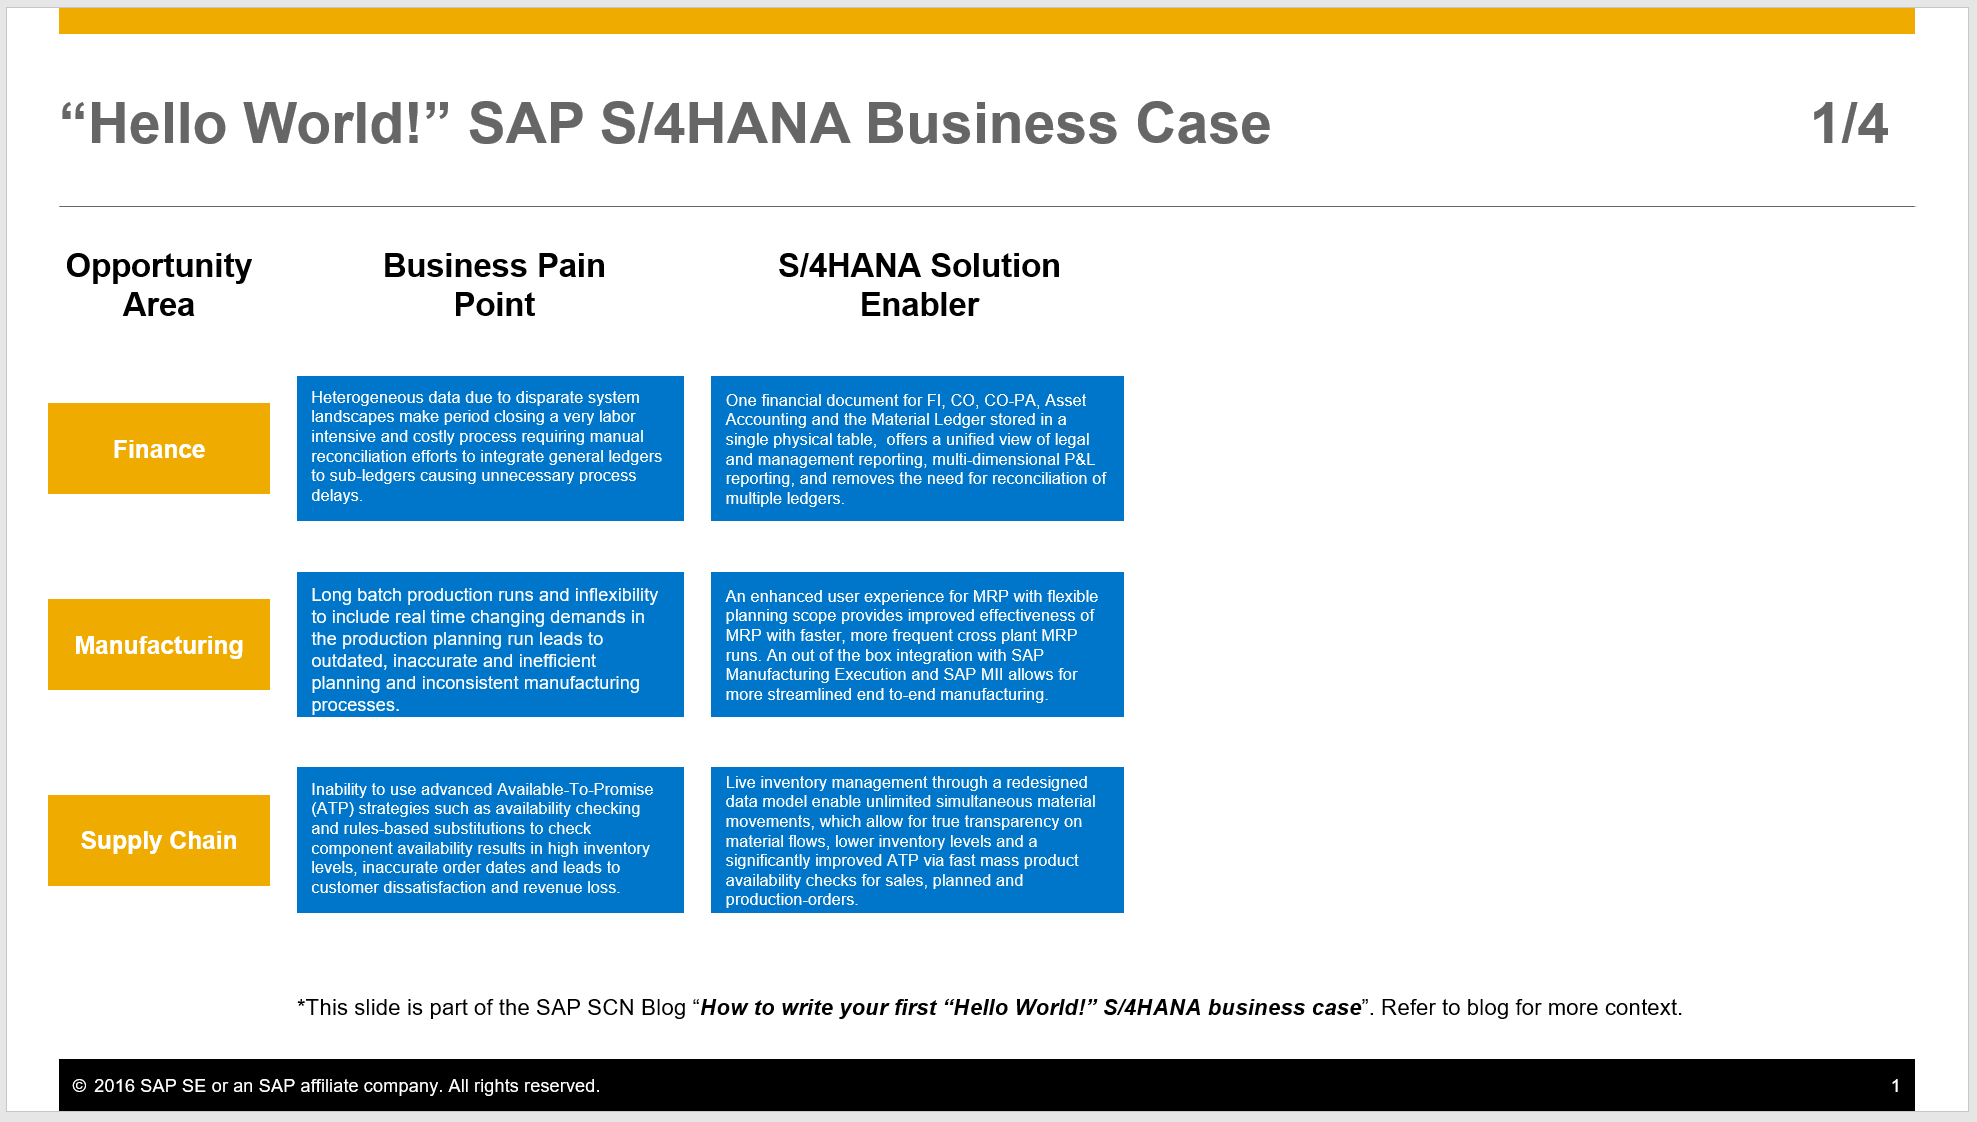 How To Write Your First SAP SHANA Business Case SAP News Center - How to write a business process